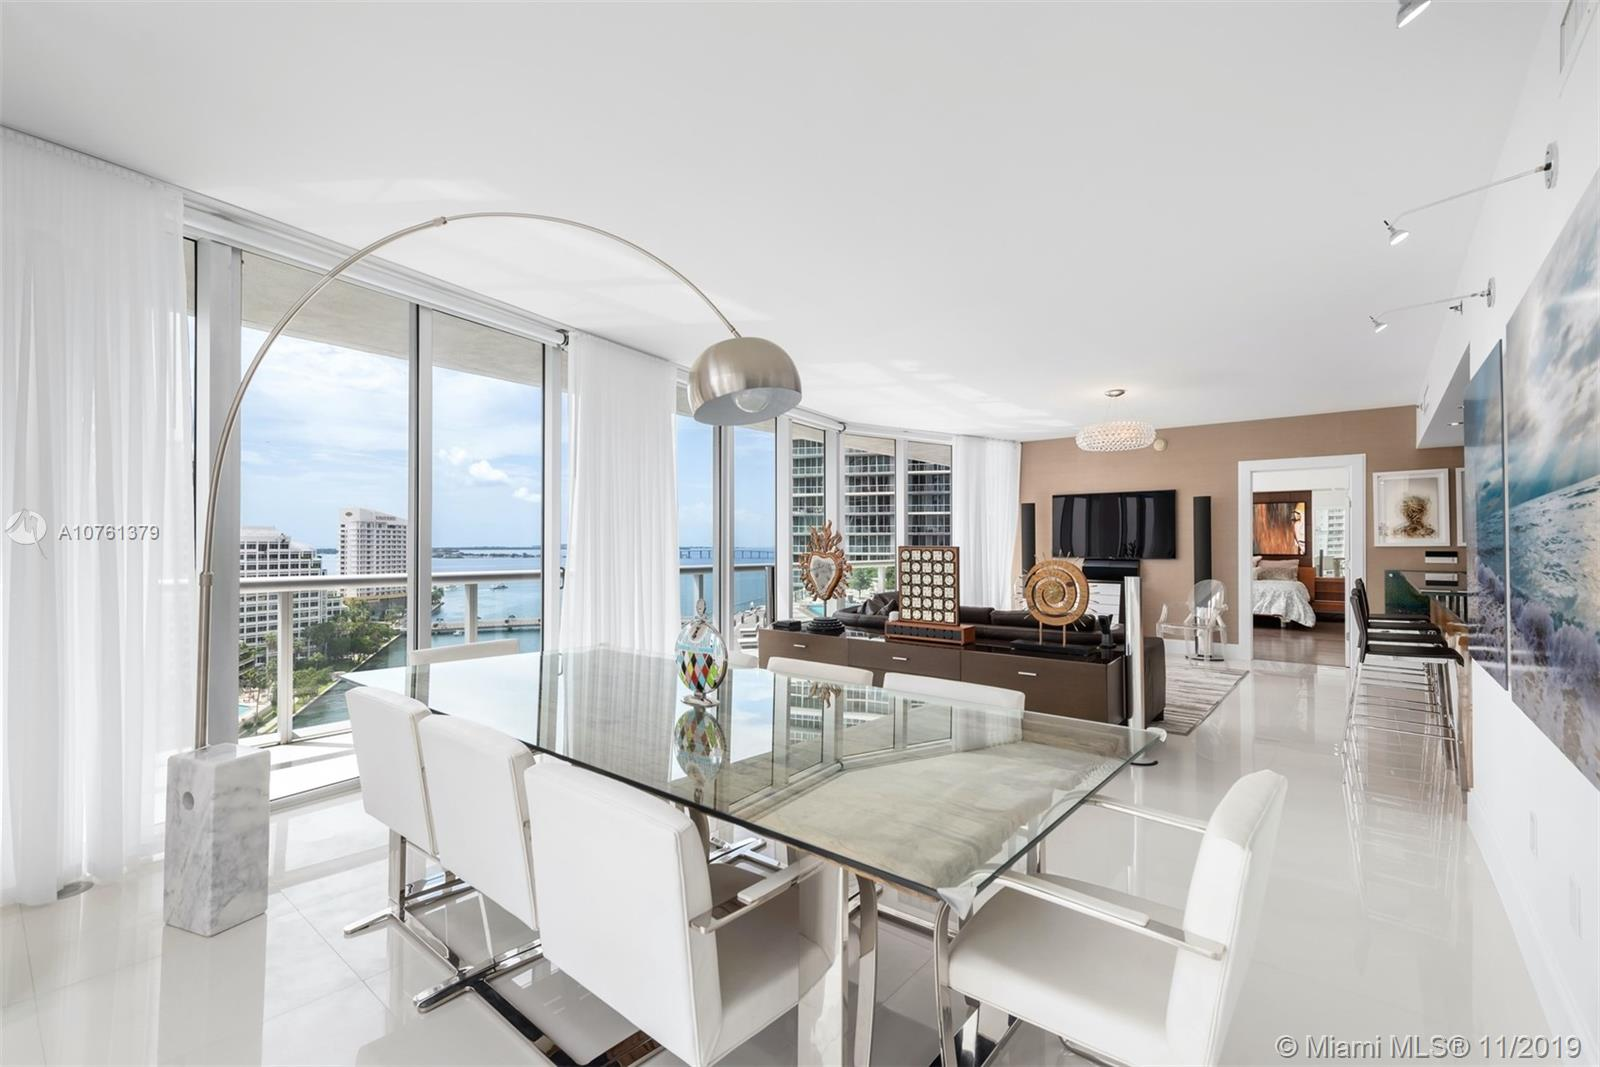 One-of-a-kind, impeccably maintained, highly upgraded 3-bed/2.5 bath in Icon Brickell. One of the best 3-bed layouts in the Brickell marketplace w/bay views from all living & bedrooms. Just renovated luxurious/stunning Master Bath! White Porcelain floors in living areas & wood in beds, motorized blinds & sheer curtains, Lutron lighting system, Nest Digital thermostat w/smart phone app, media wall w TV/Bang & Olufson audio system, custom closets. 2nd Garage Space & Furniture can be purchased separately. See Attachment for full list of upgrades.